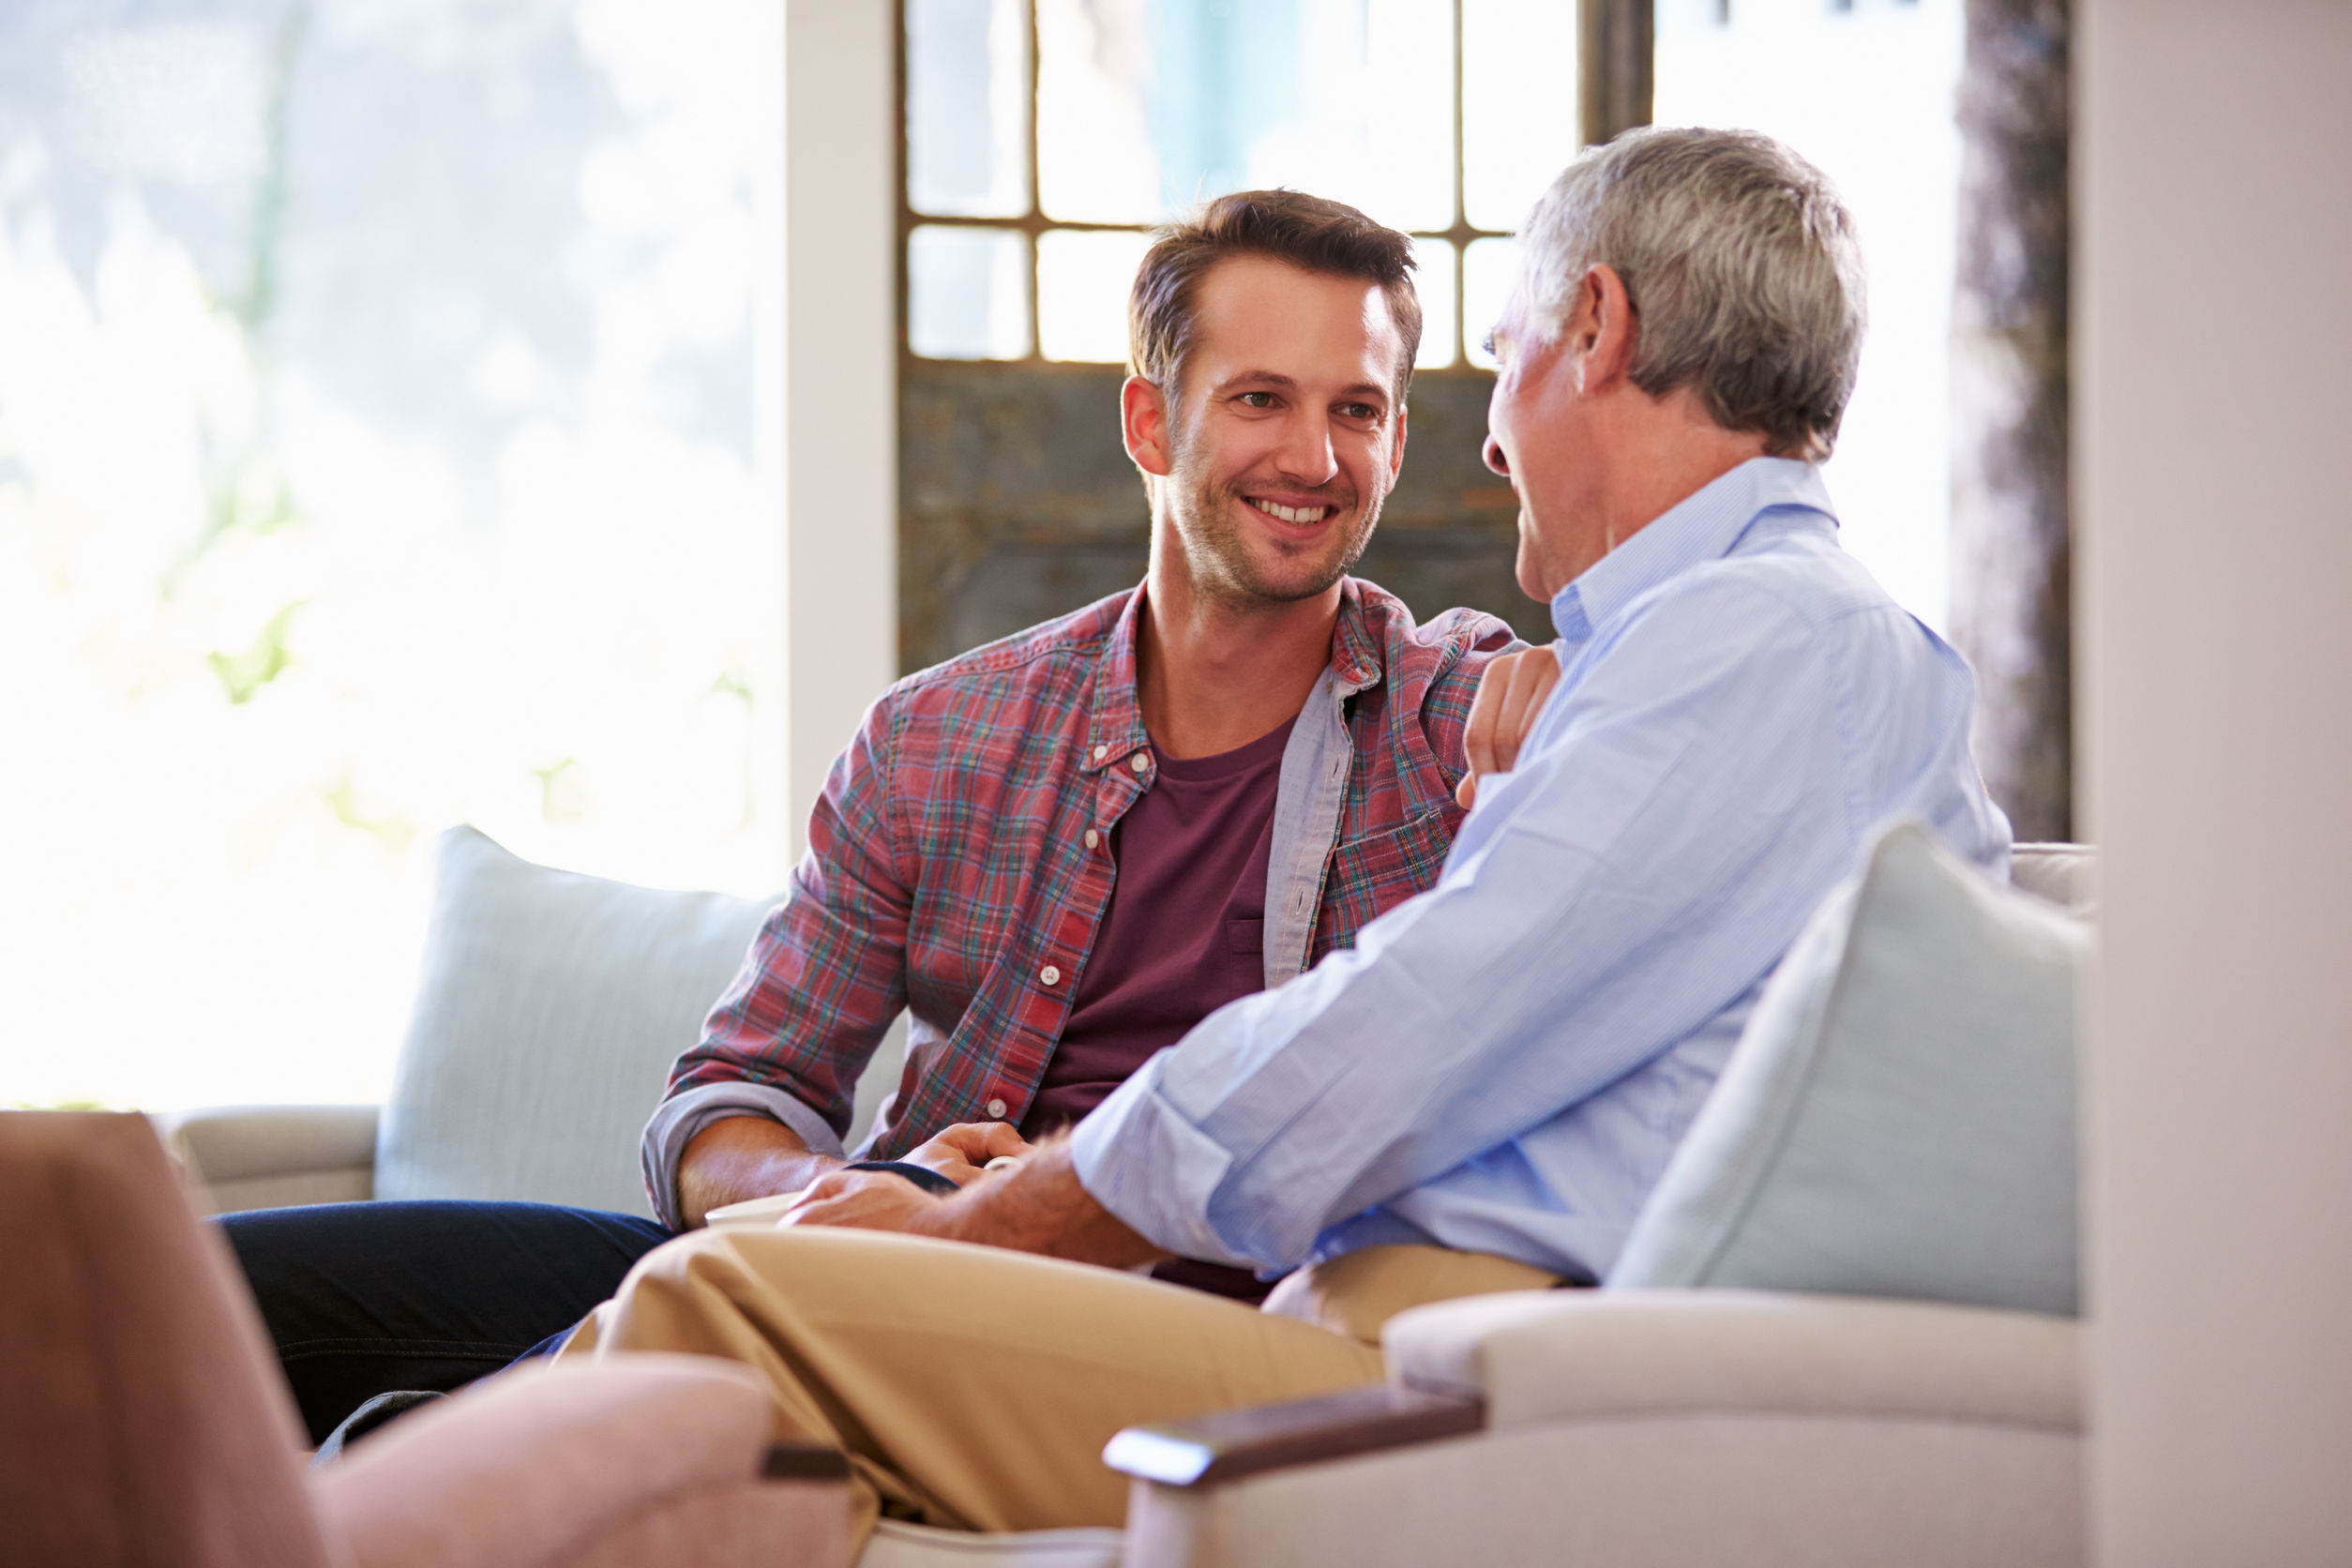 Adult father and son talking on couch